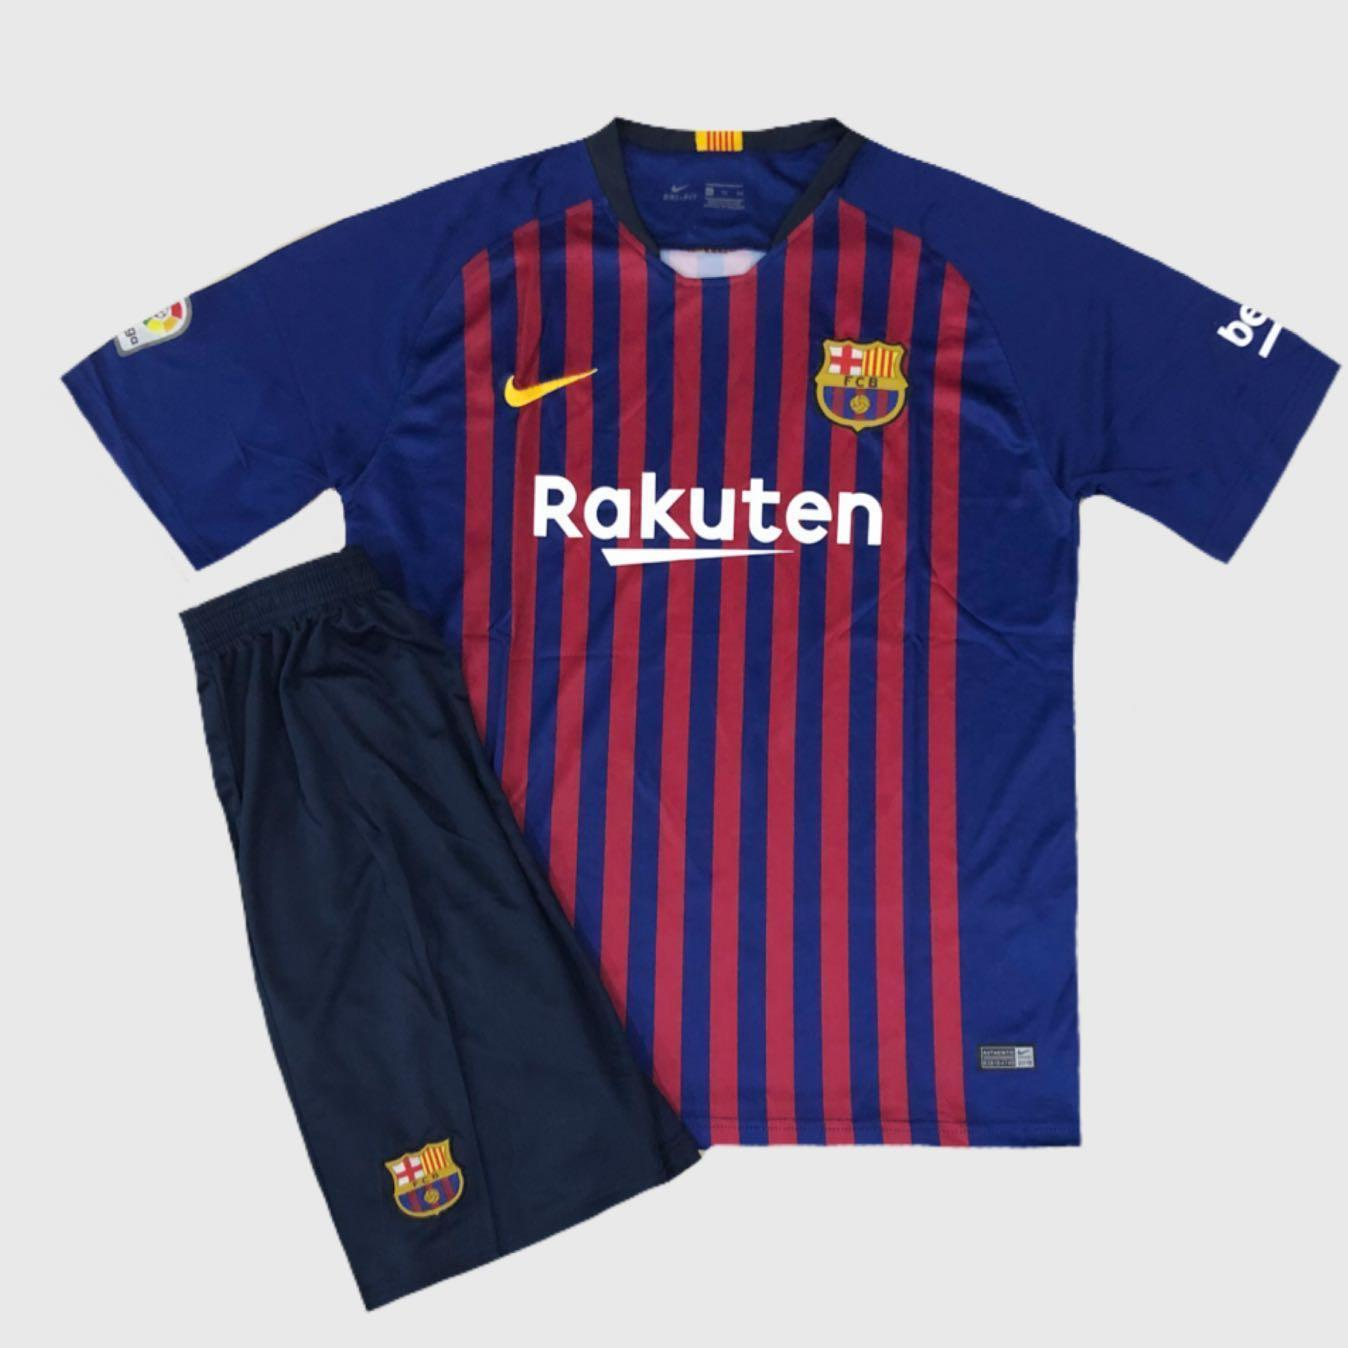 low priced f408b 474db ❗️SALE❗️Barcelona 18-19 Home/Away/Third Jersey Kit ...